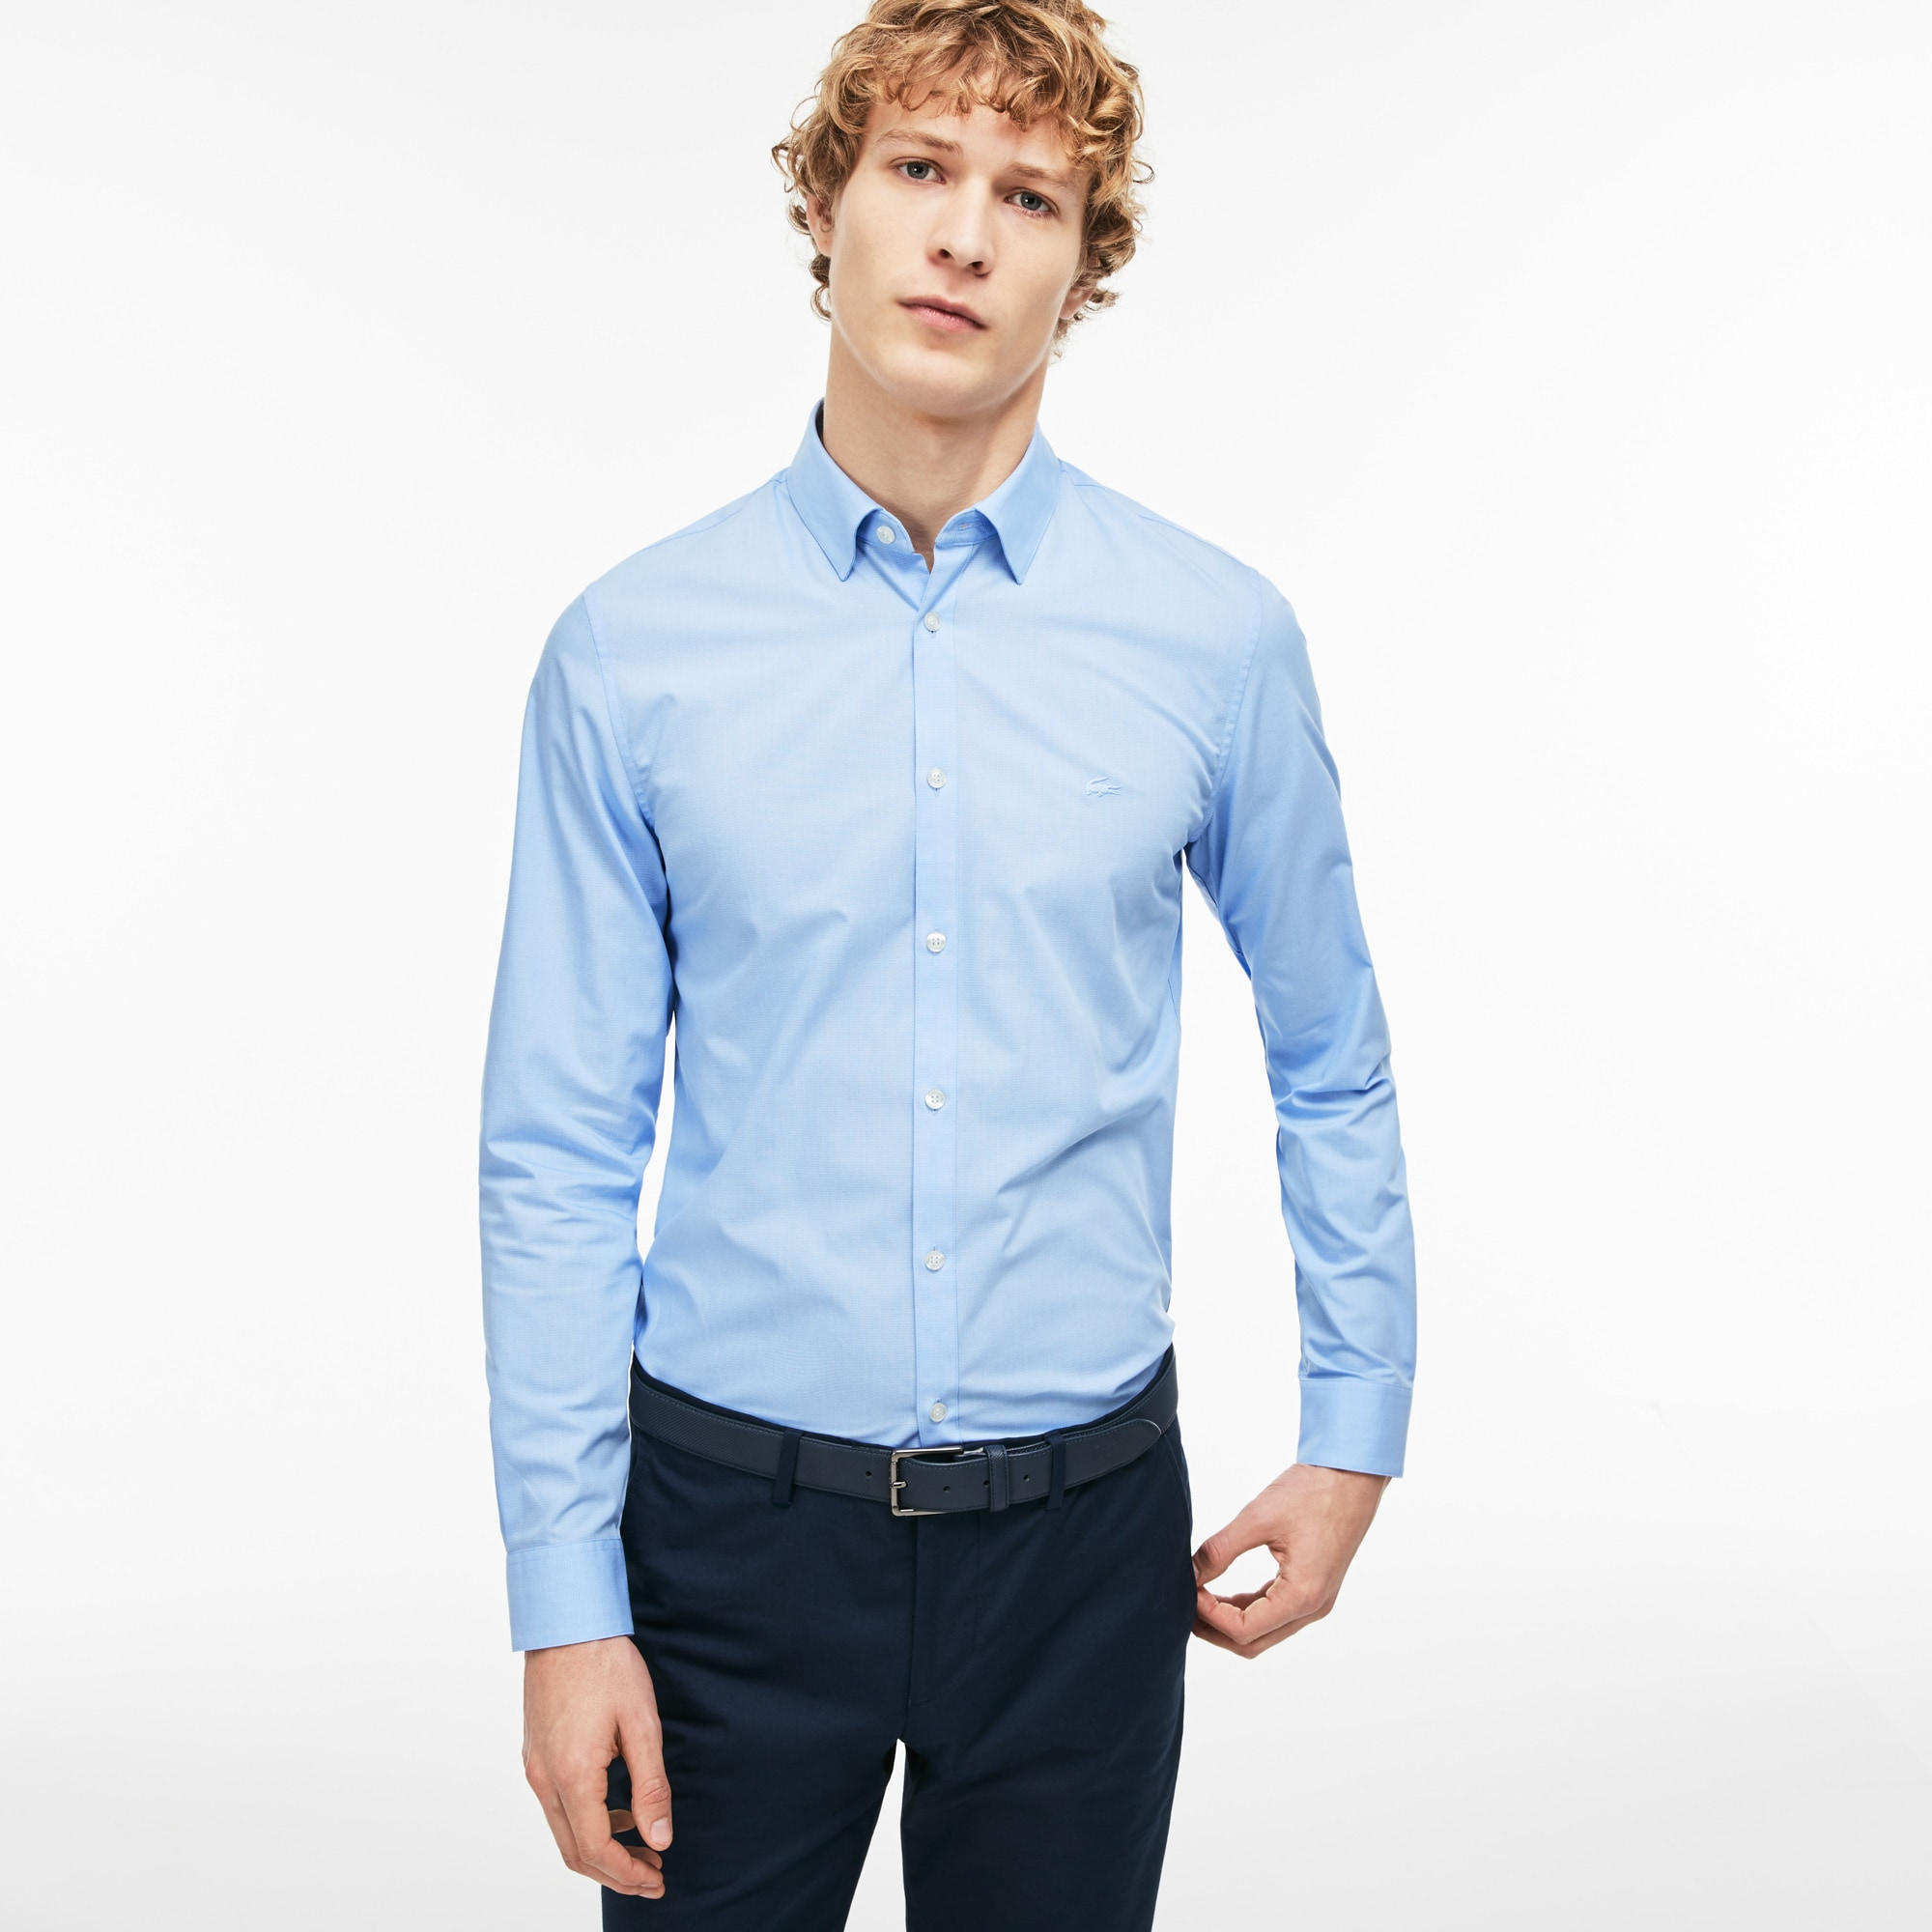 Men's Slim Fit Striped Jacquard Poplin Shirt